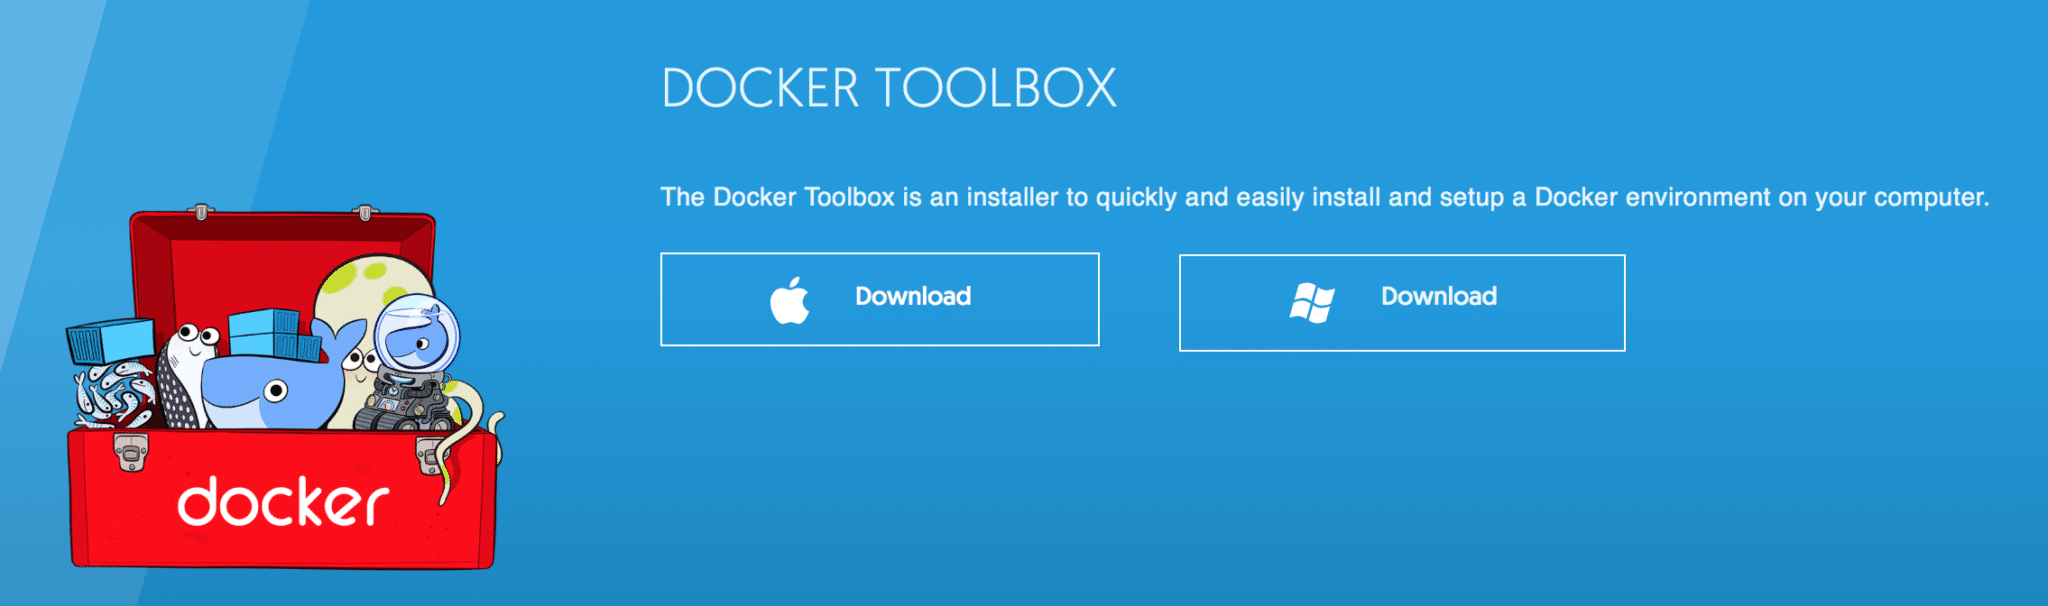 Installing and Using Docker Toolbox for Mac OSX and Windows